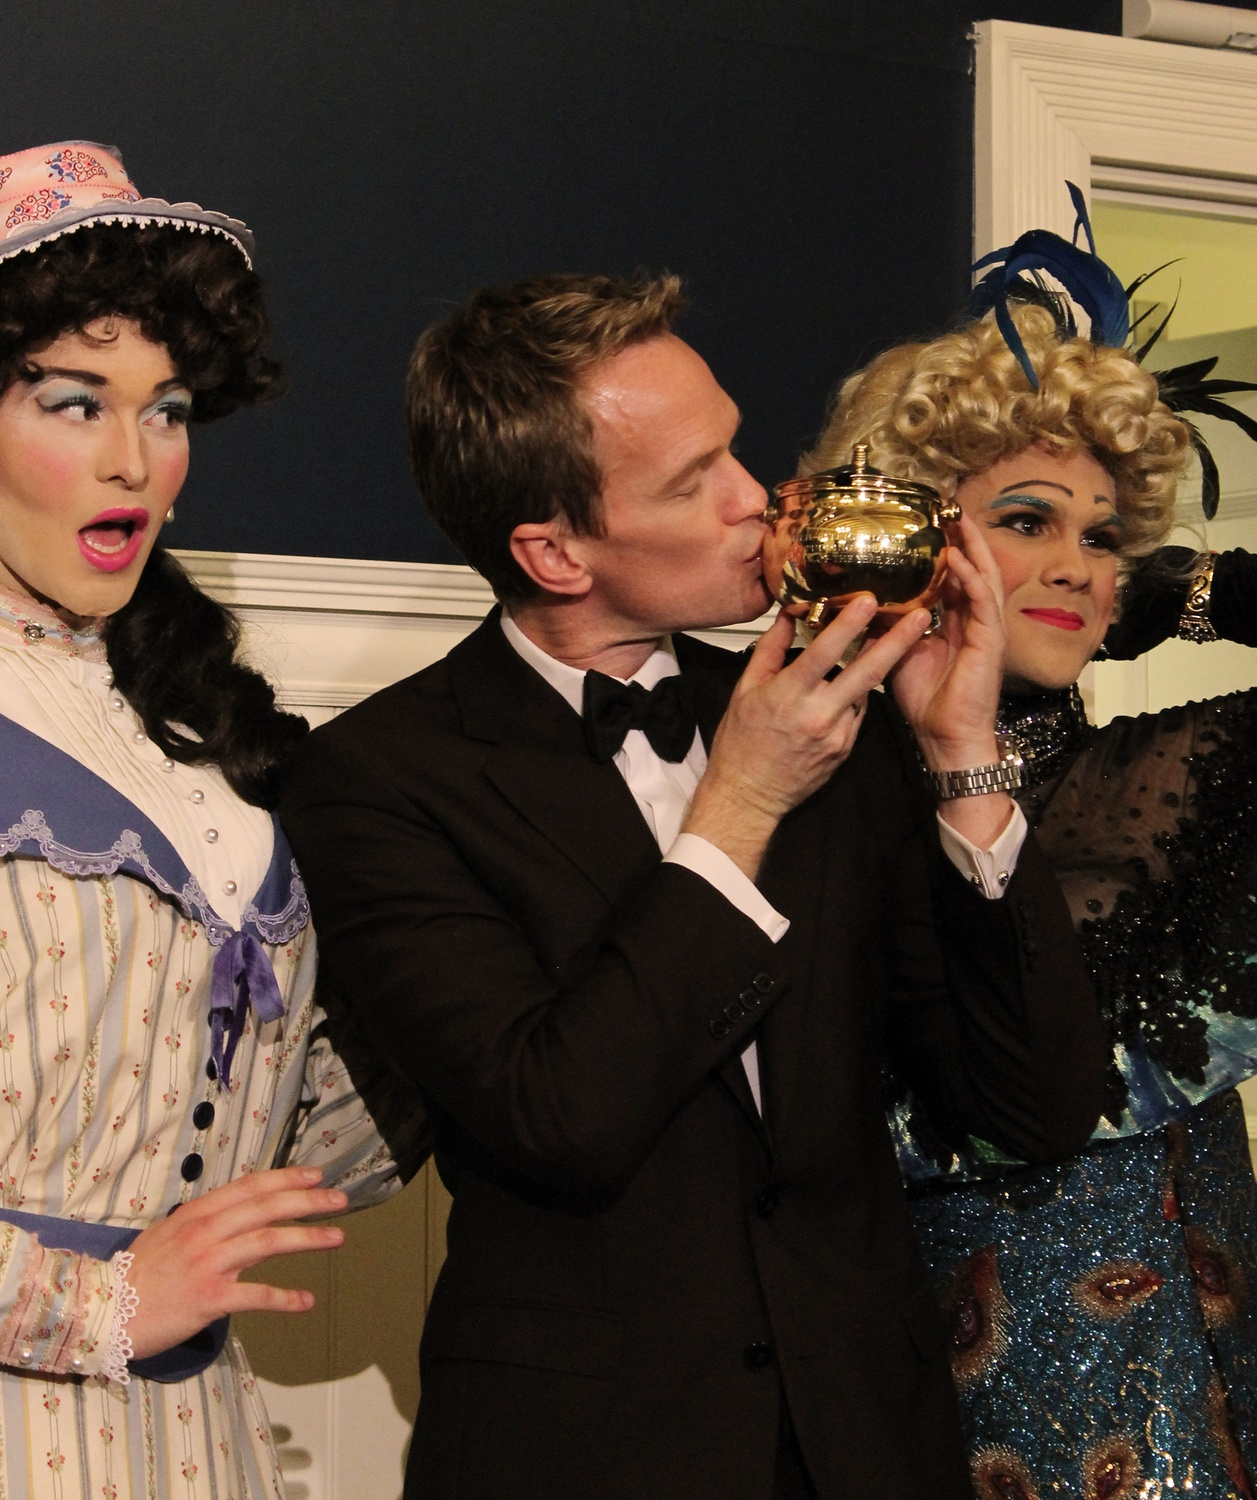 Hasty Pudding Theatricals' Man of the Year